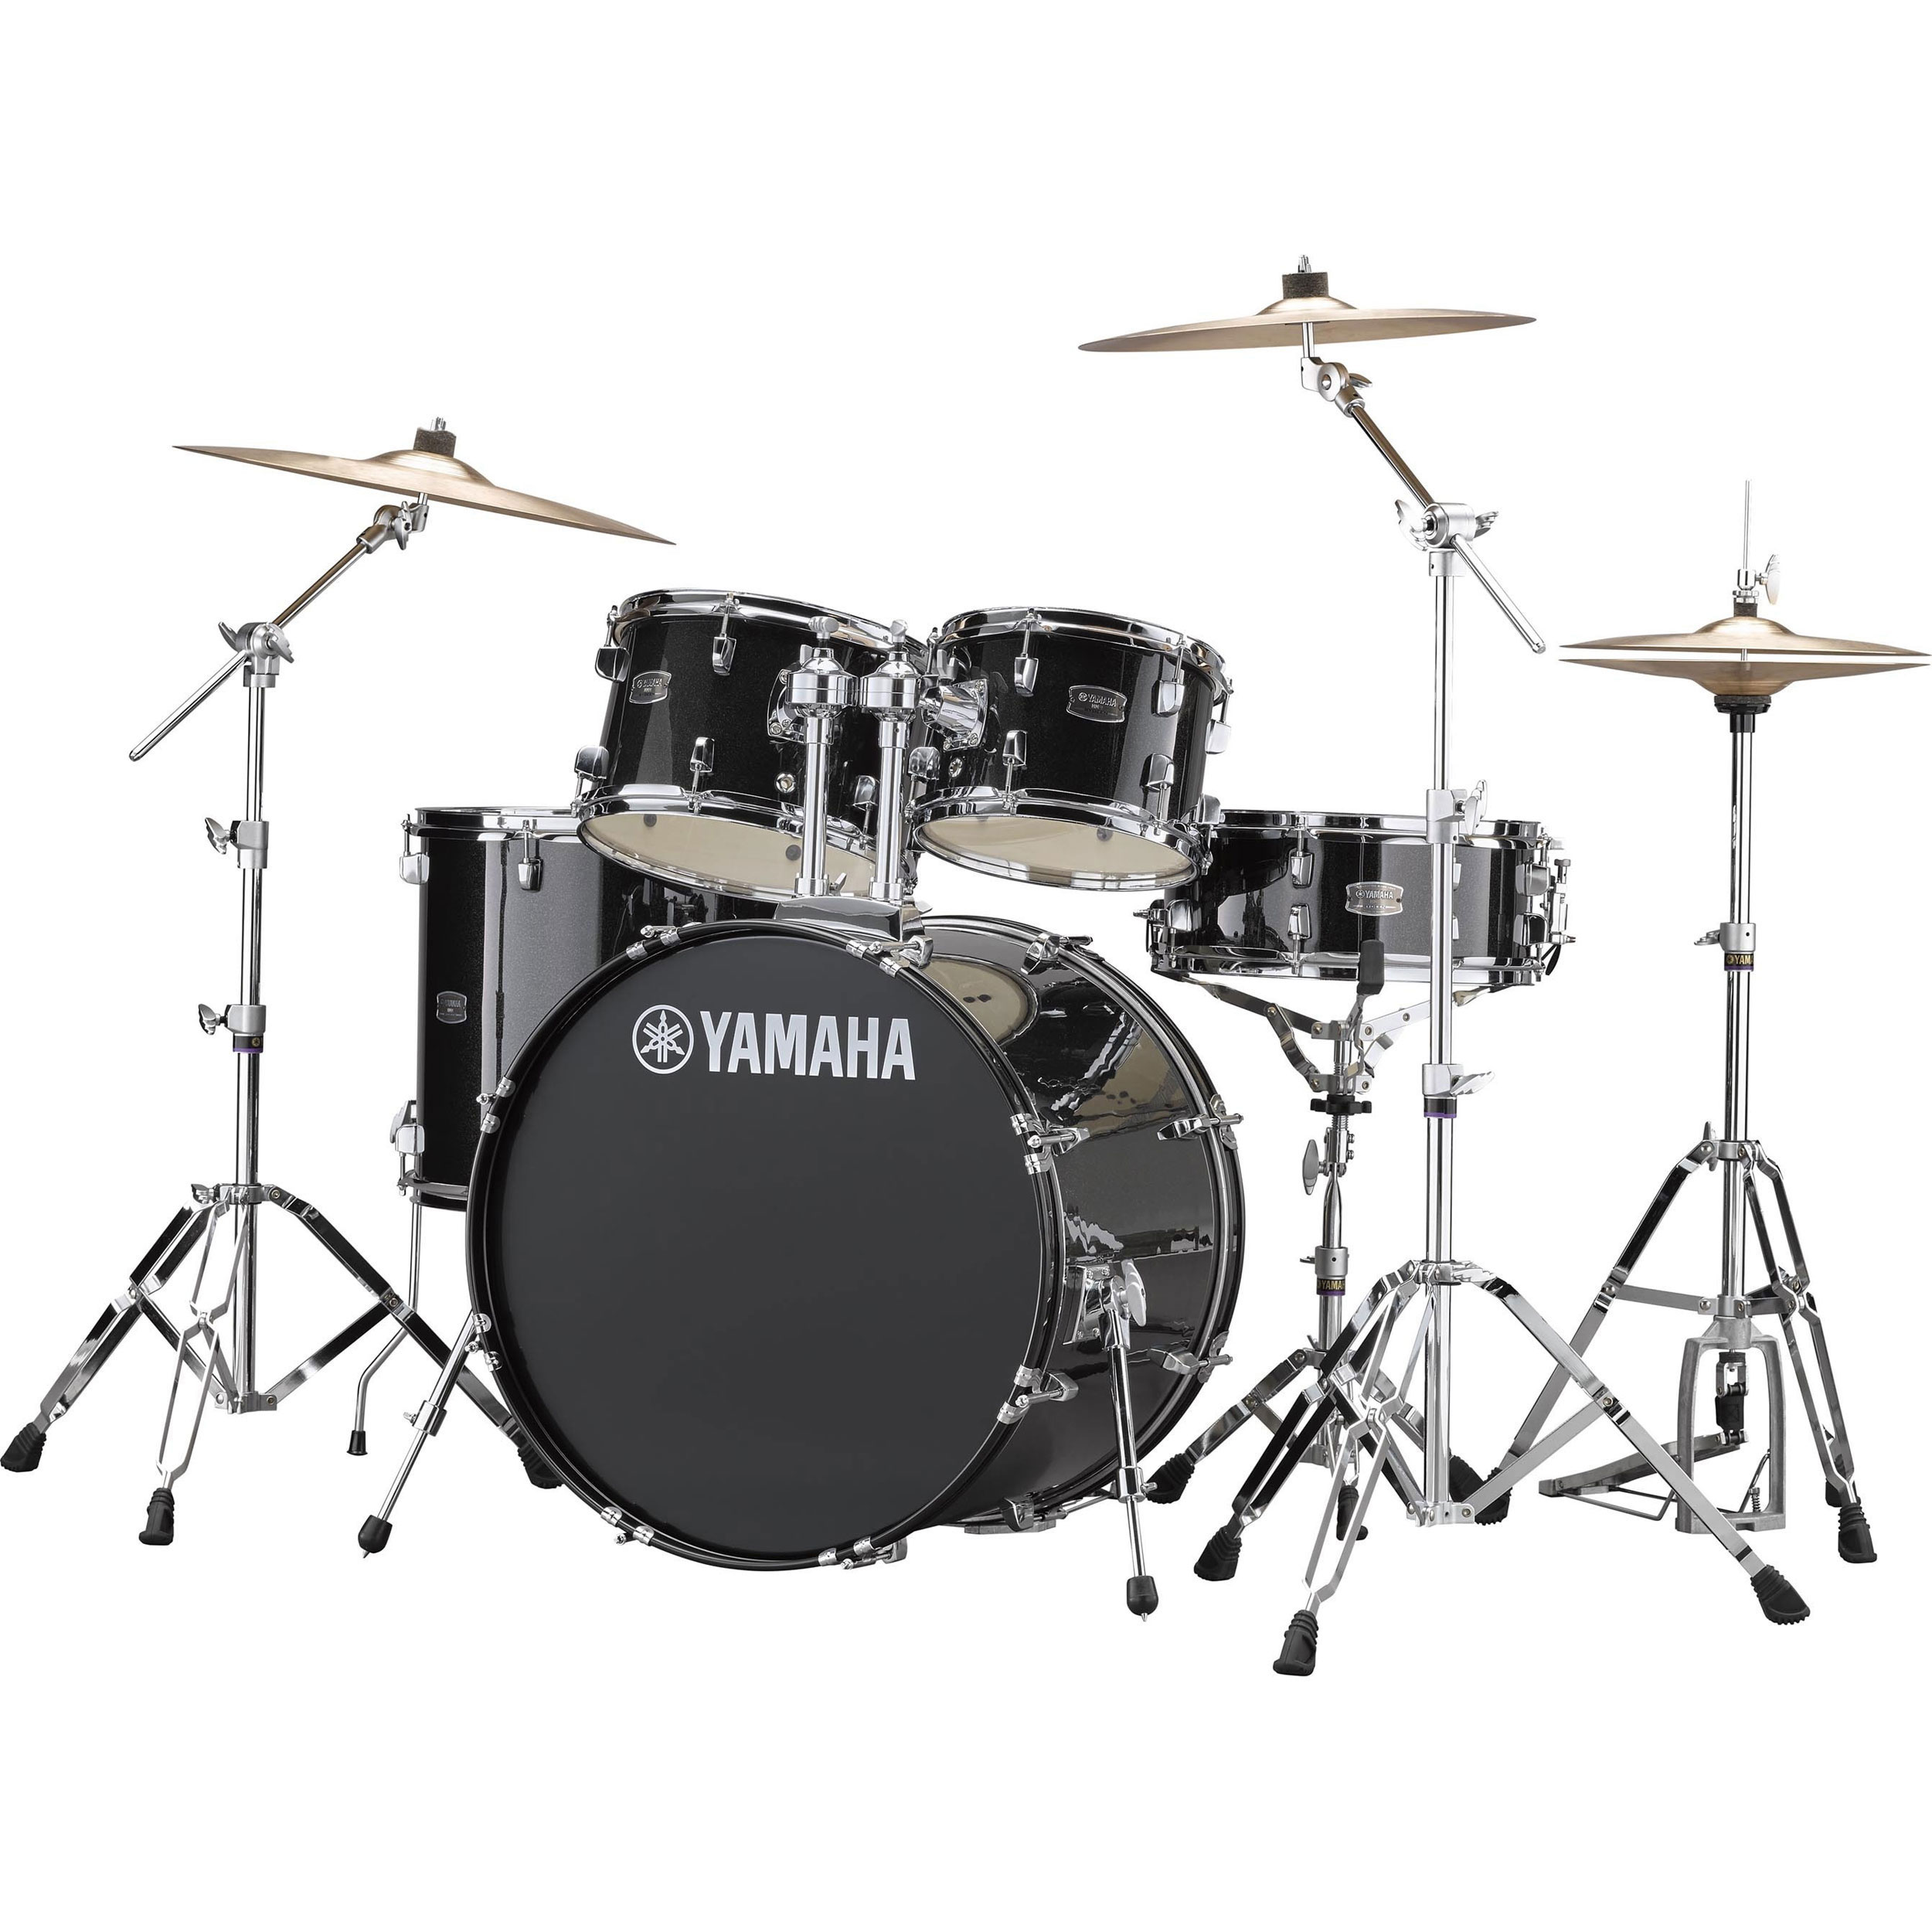 "Yamaha Rydeen 5-Piece Drum Set with Hardware & Cymbals (22"" Bass, 10/12/16"" Toms, 14"" Snare)"